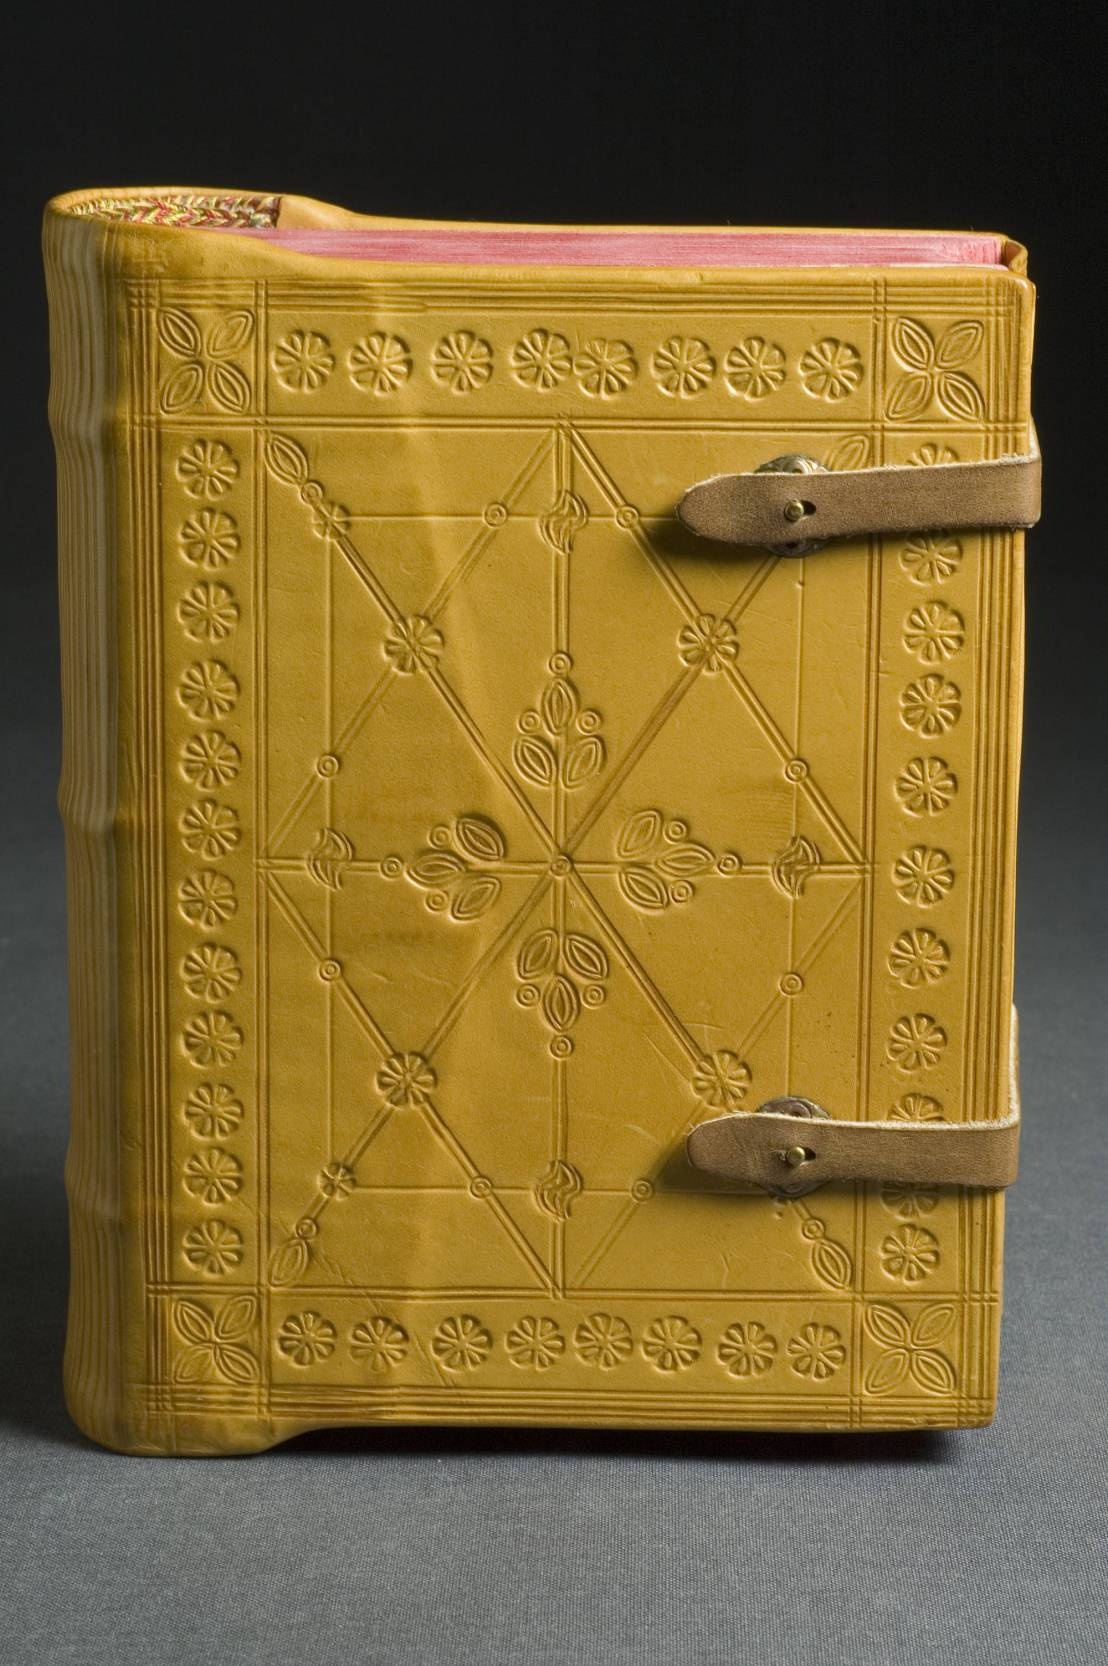 17th century Armenian binding